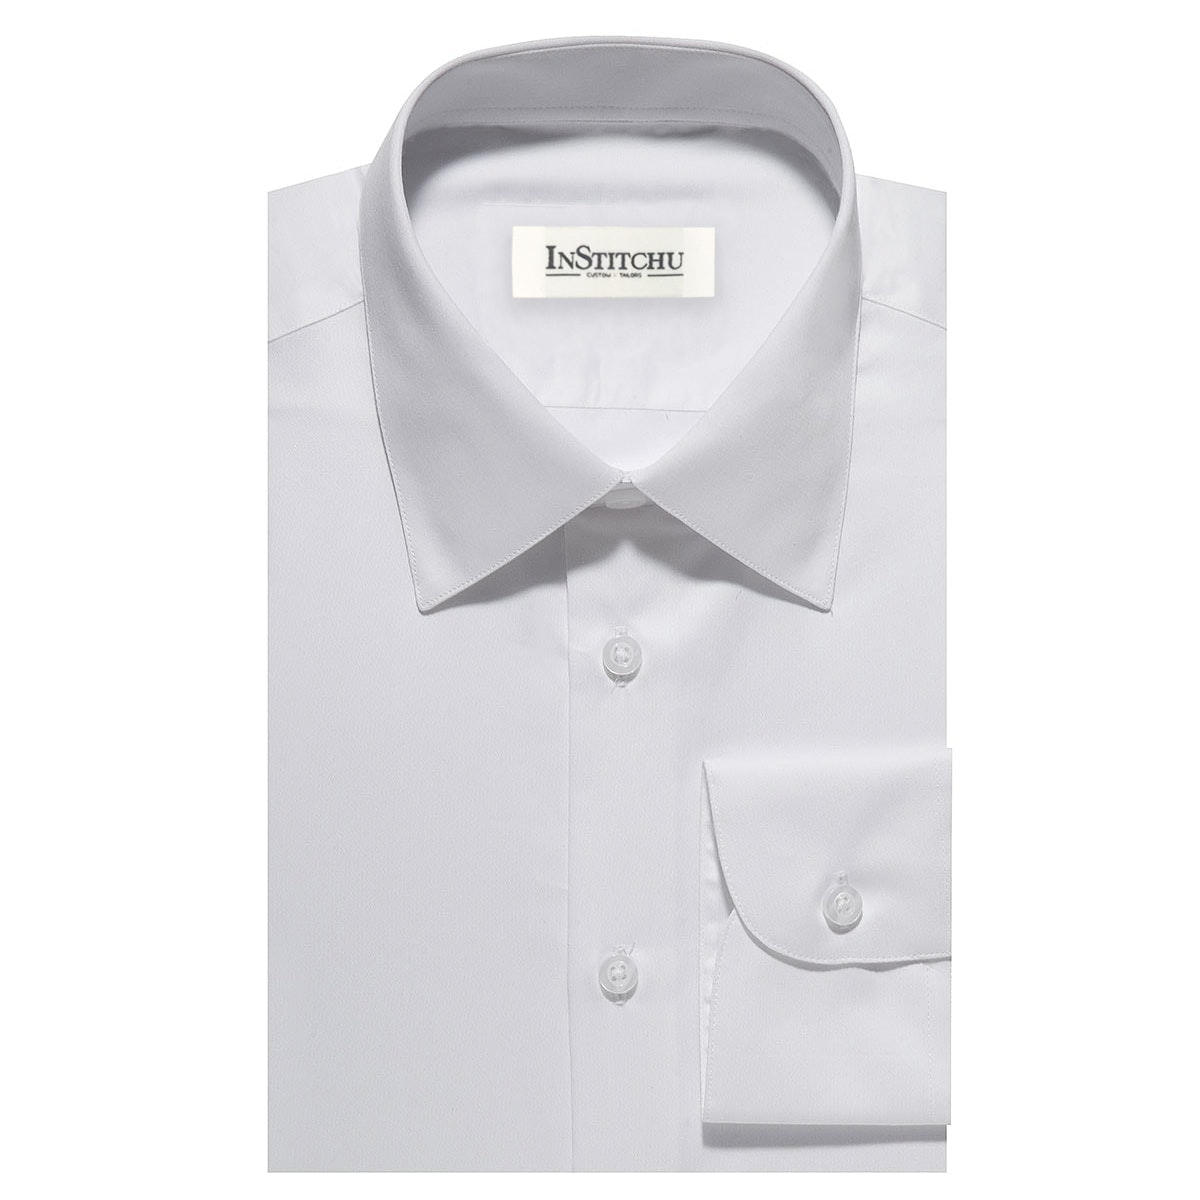 InStitchu Collection The Boca White Shirt